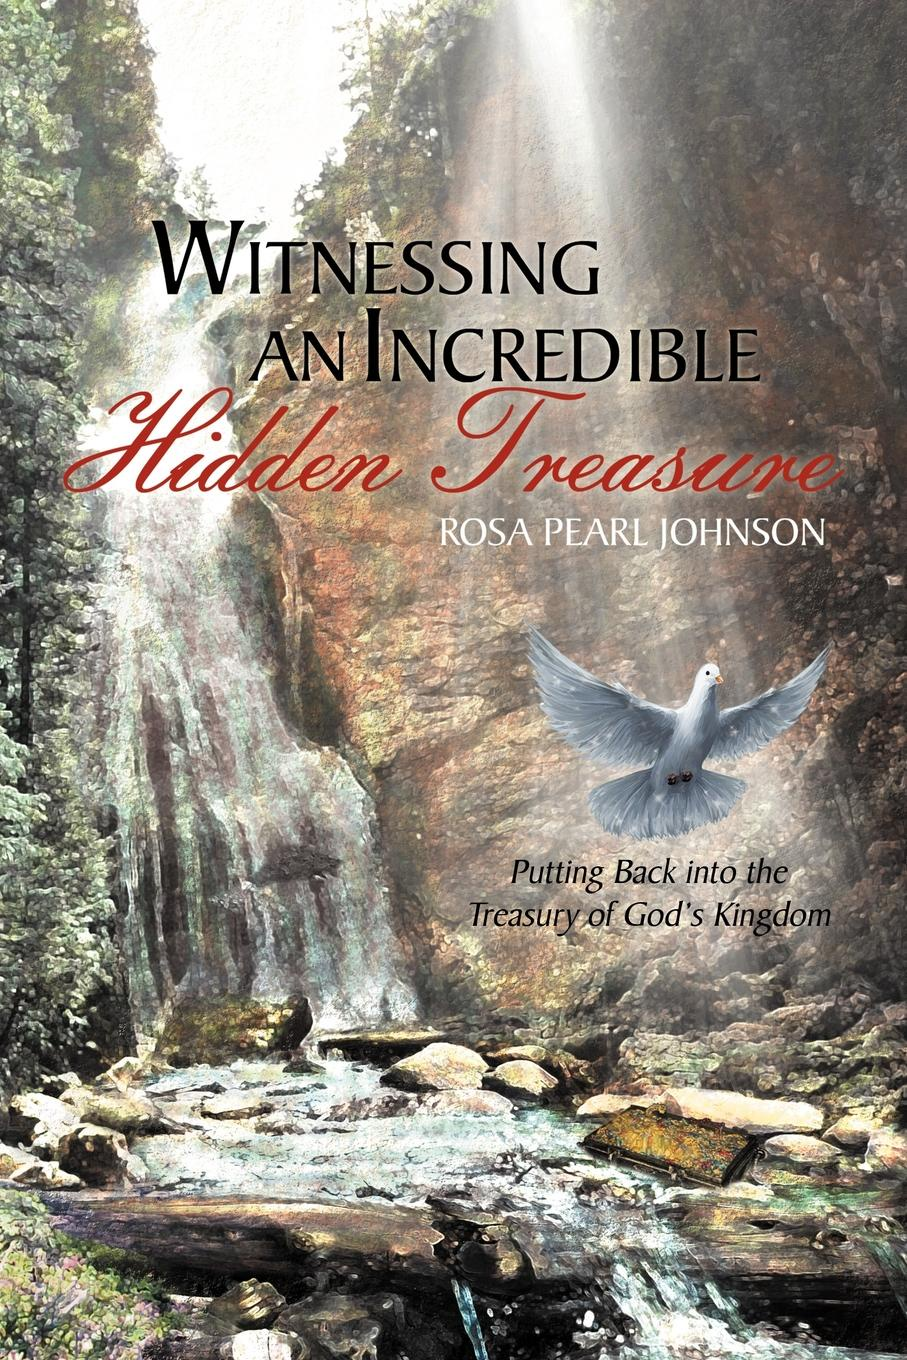 Rosa Pearl Johnson Witnessing An Incredible Hidden Treasure Putting Back into the Treasury of God's Kingdom